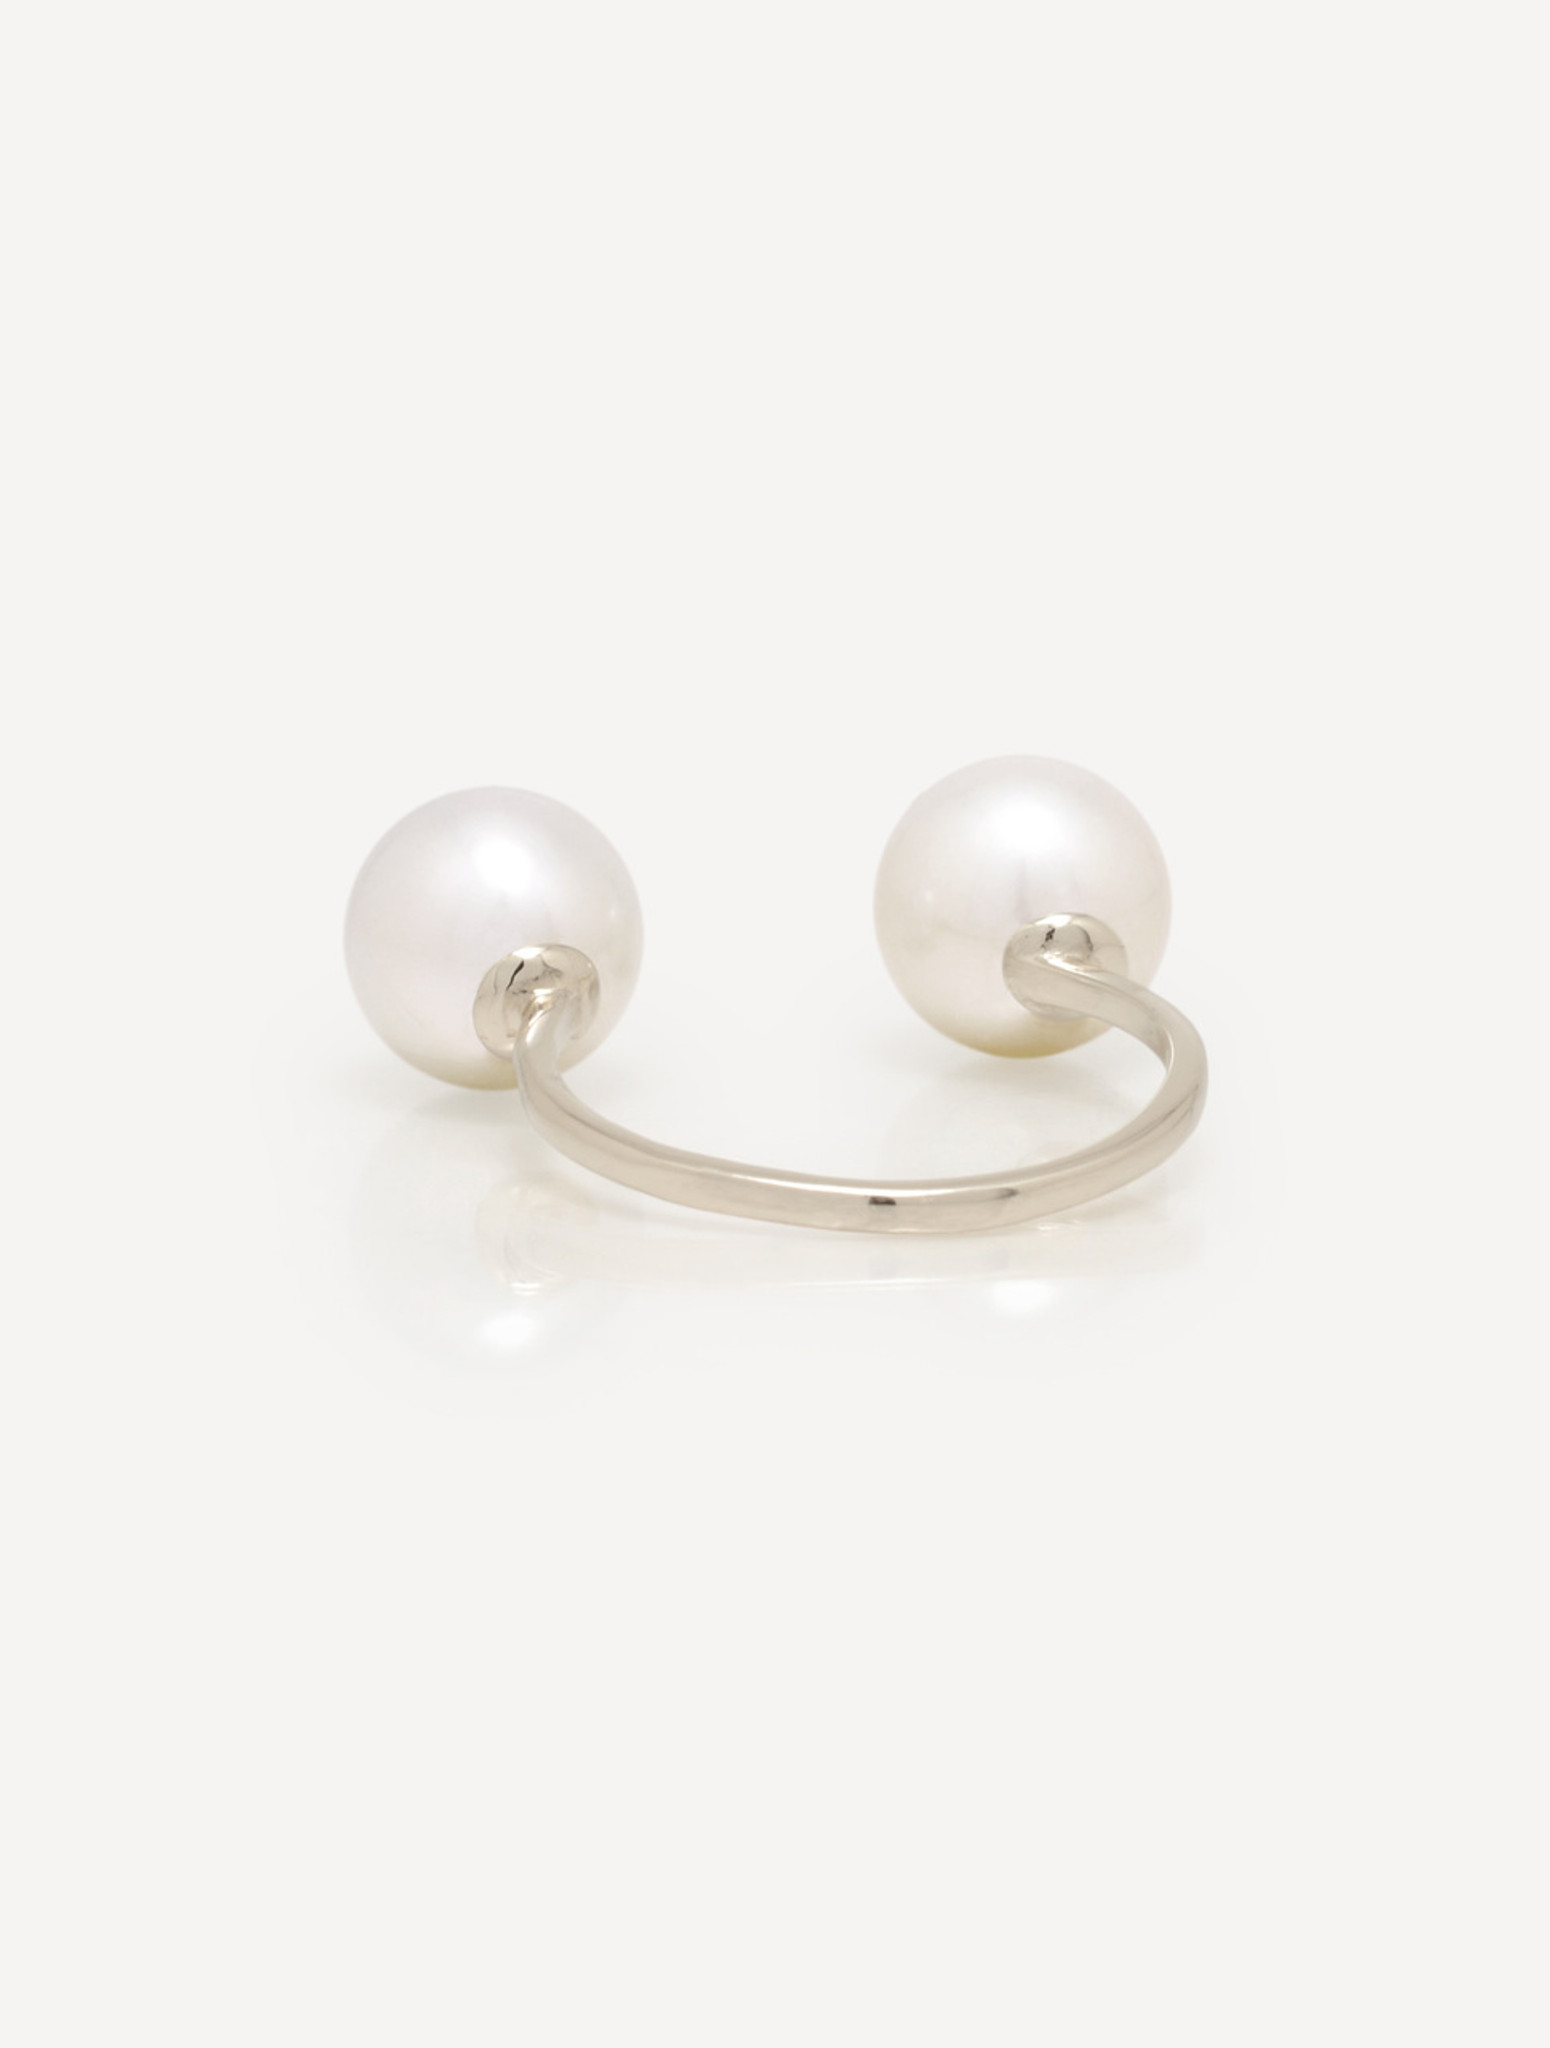 Cultured Freshwater Double Pearl Ring with Smiley Drama Emoji Diamond Pavè & Sterling Silver Band by Nektar De Stagni (8-9 mm. Size 5-6-7)